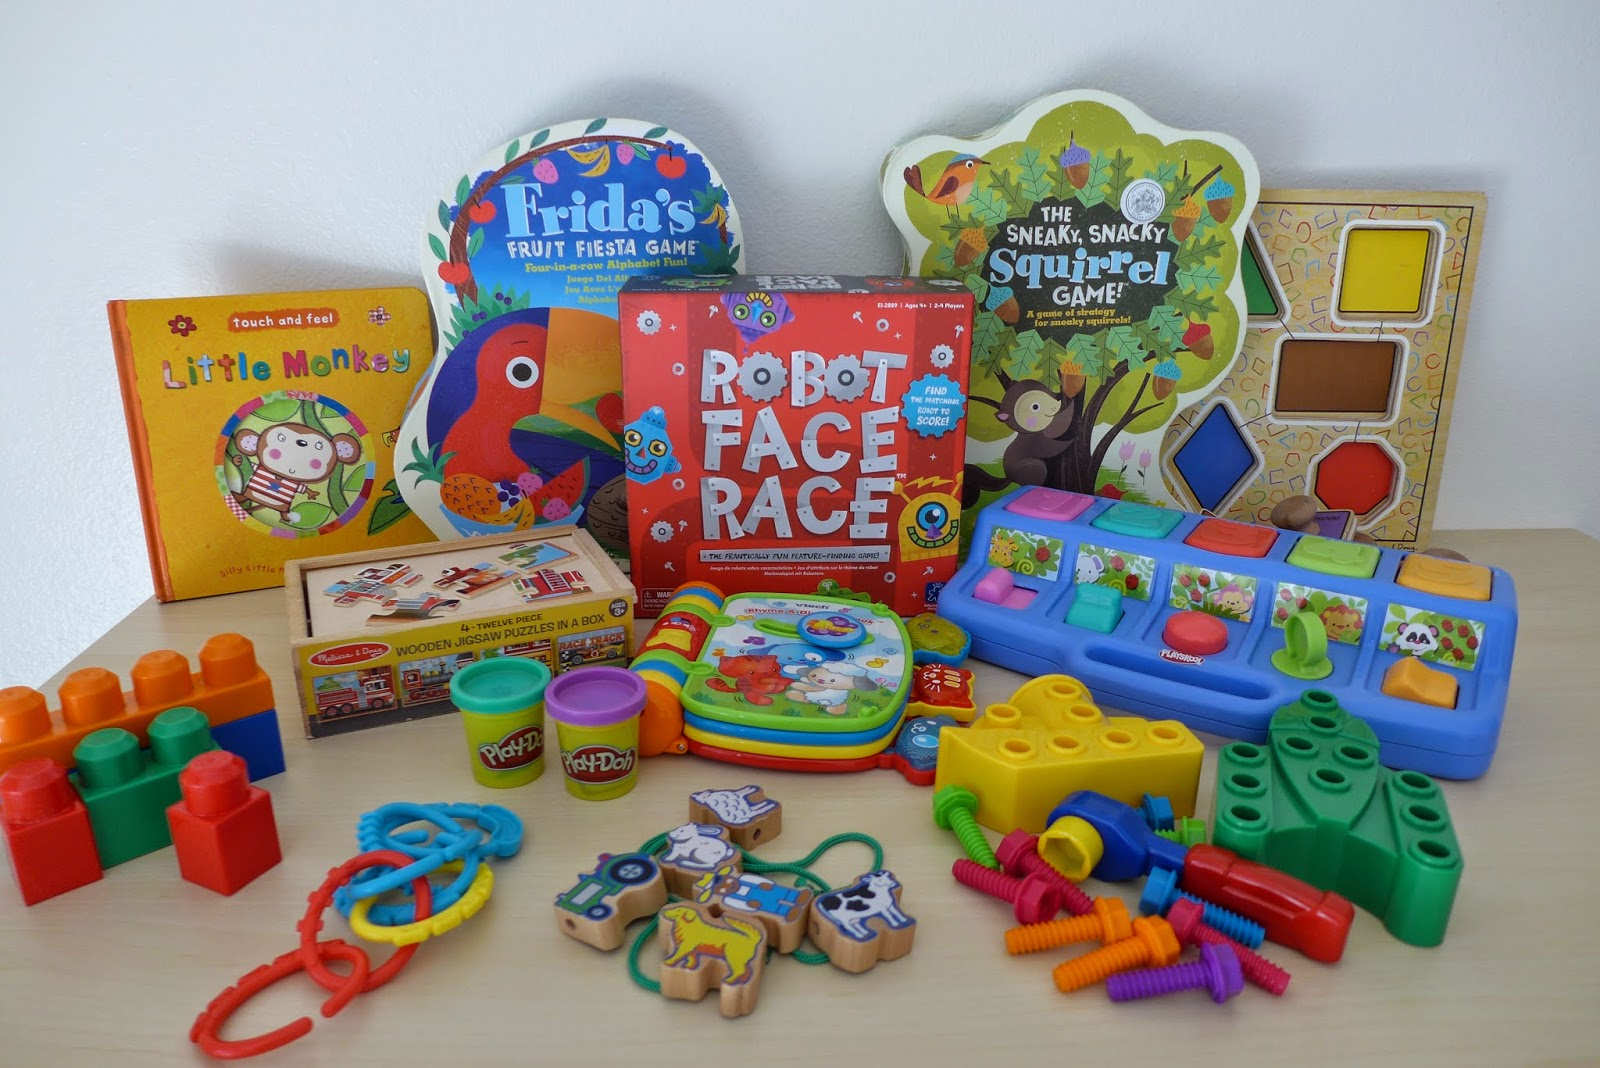 Ready Occupational therapy toys for adults